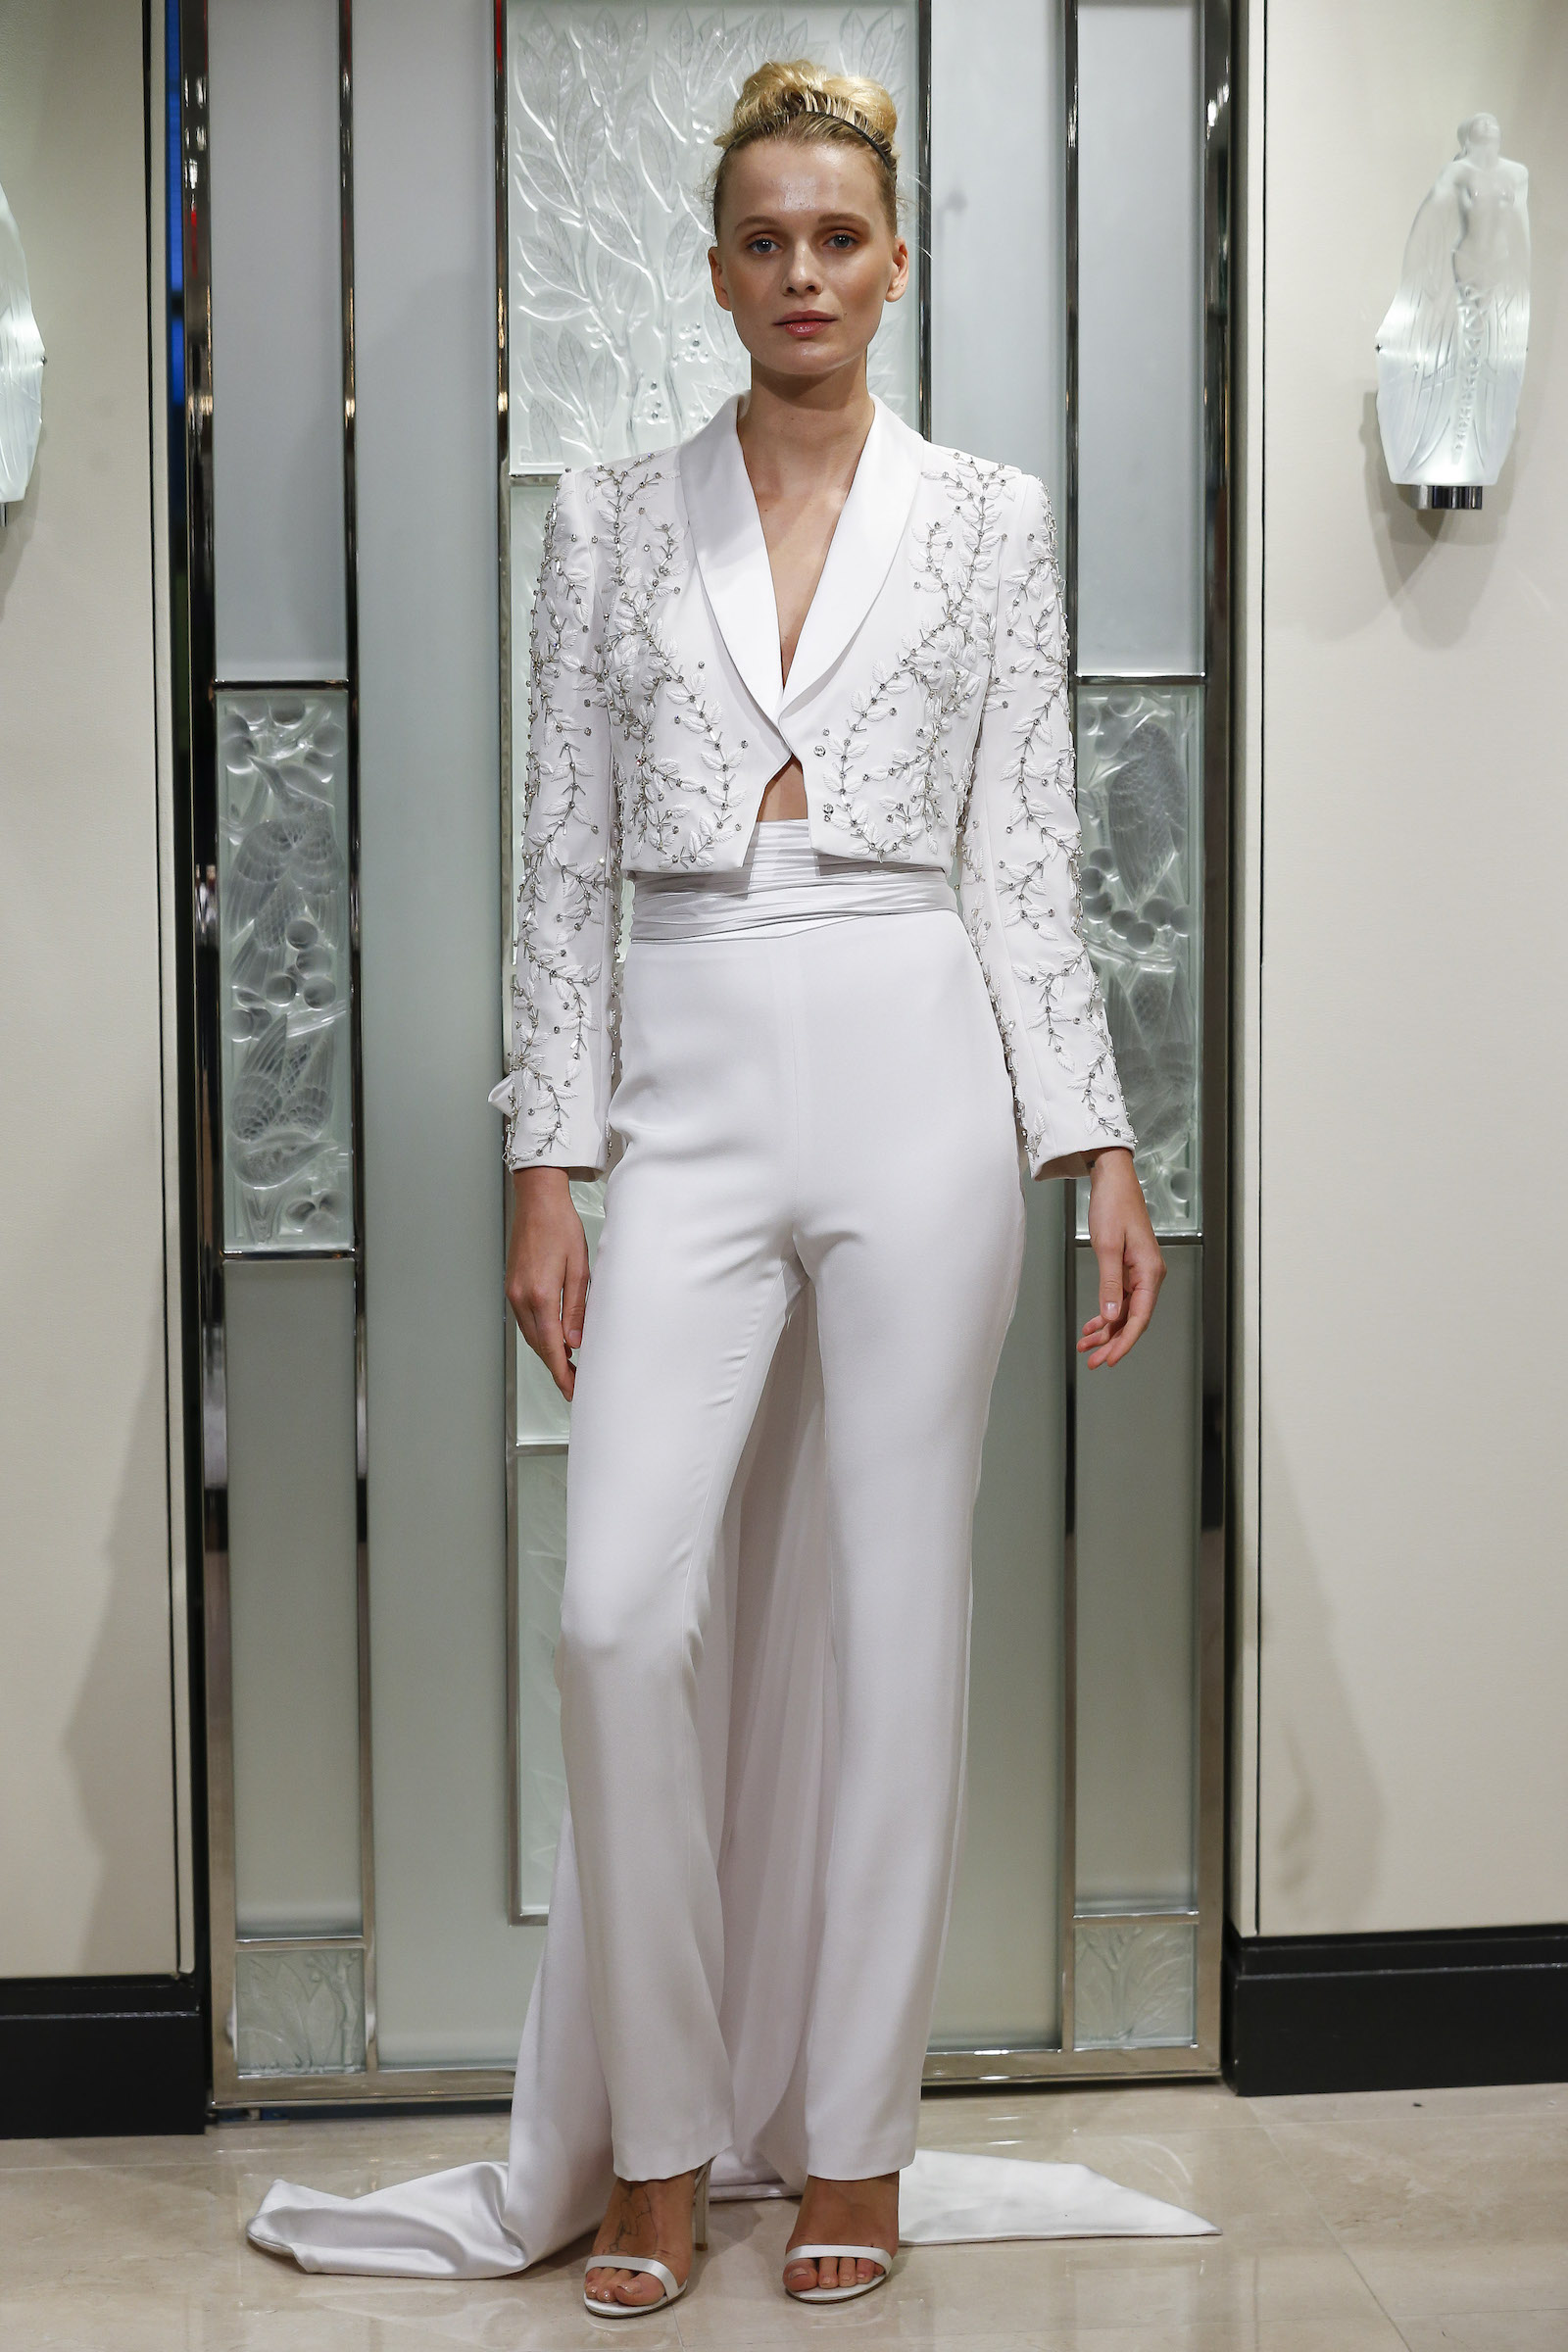 Bridal Blazer Spring 2020 Wedding Dress Trends Gracy Accad